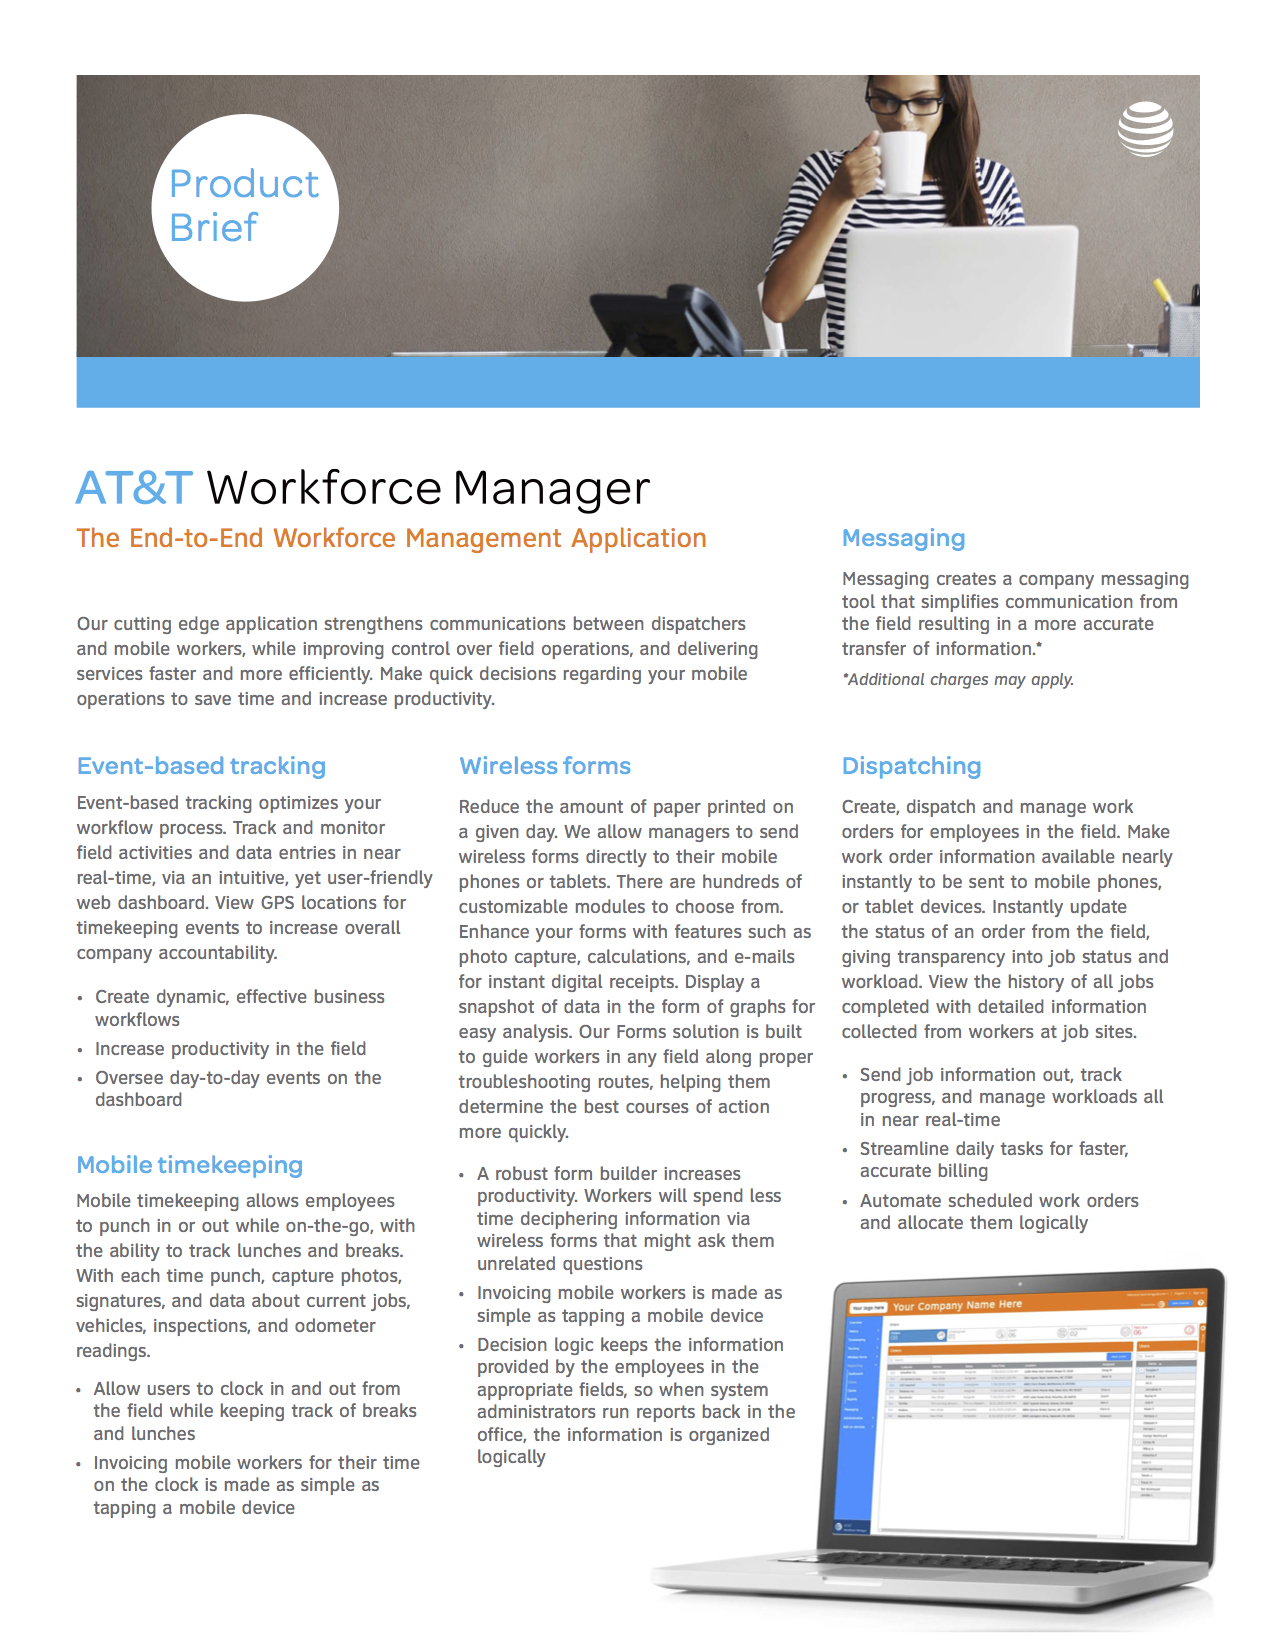 att-workforce-manager-p1.jpg